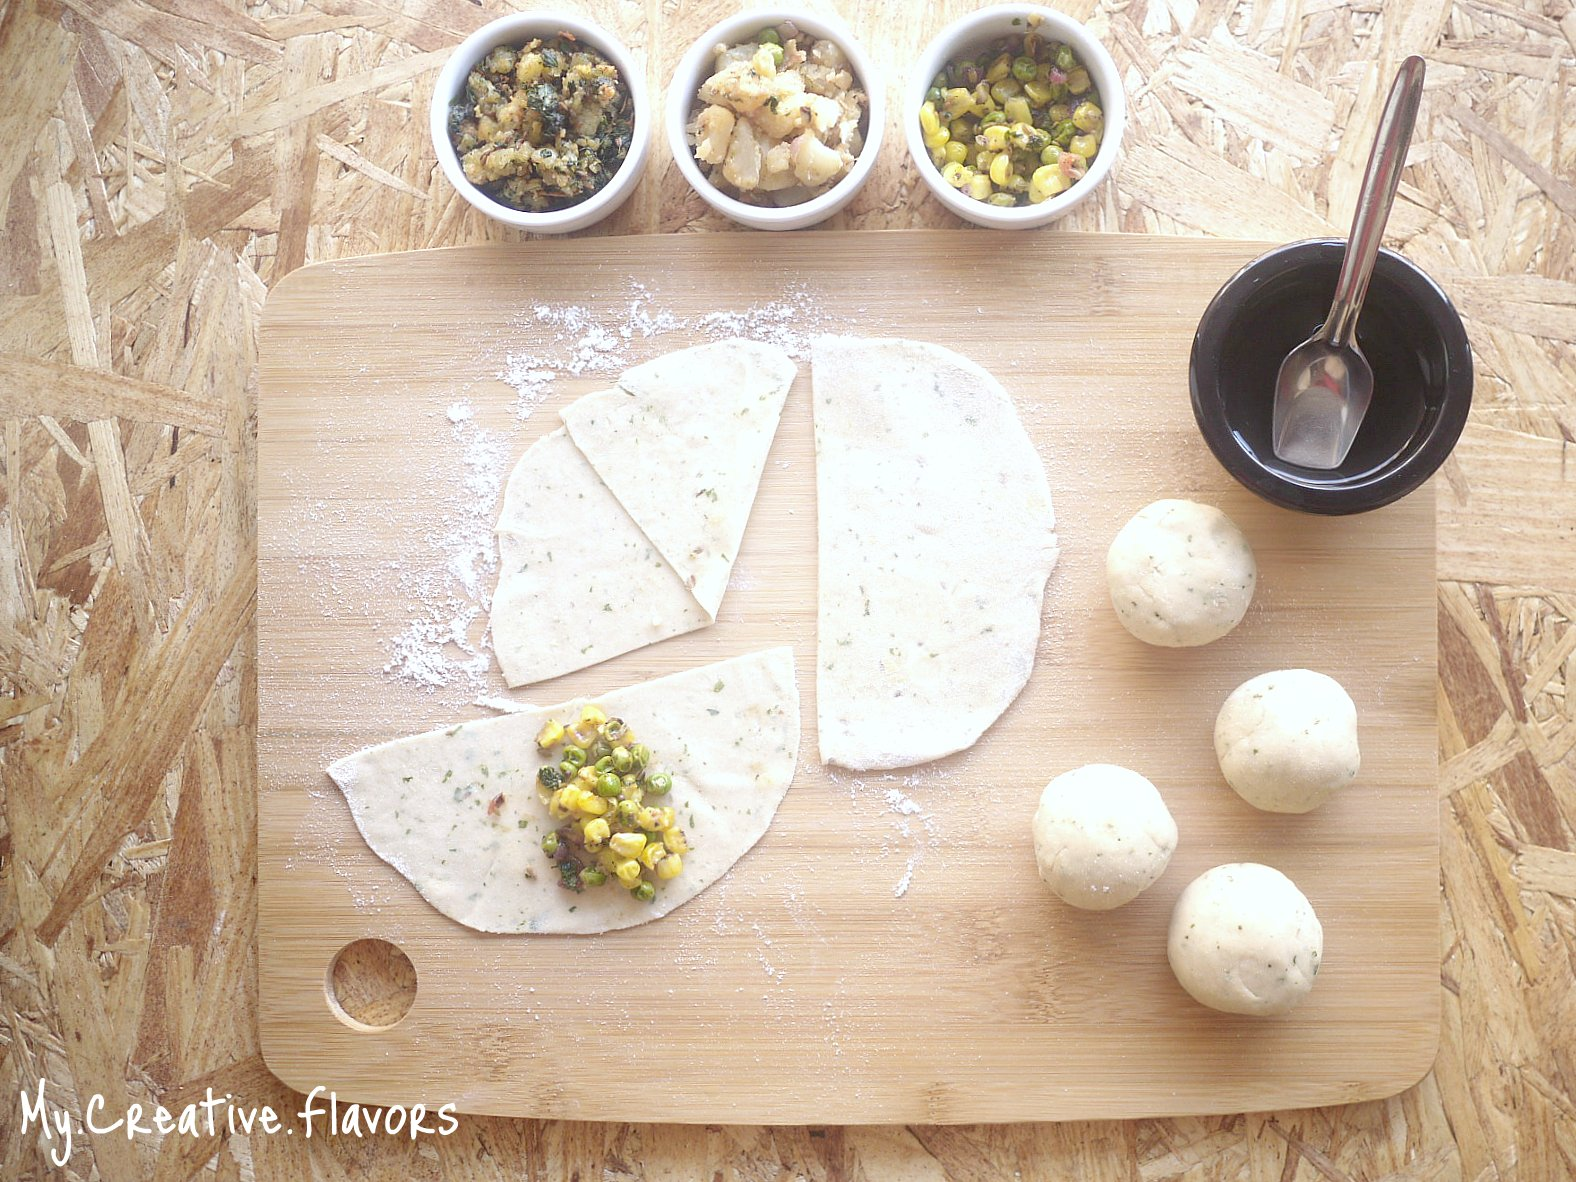 My Creative Flavors: Classic Samosa with Four Fillings - Potato ...